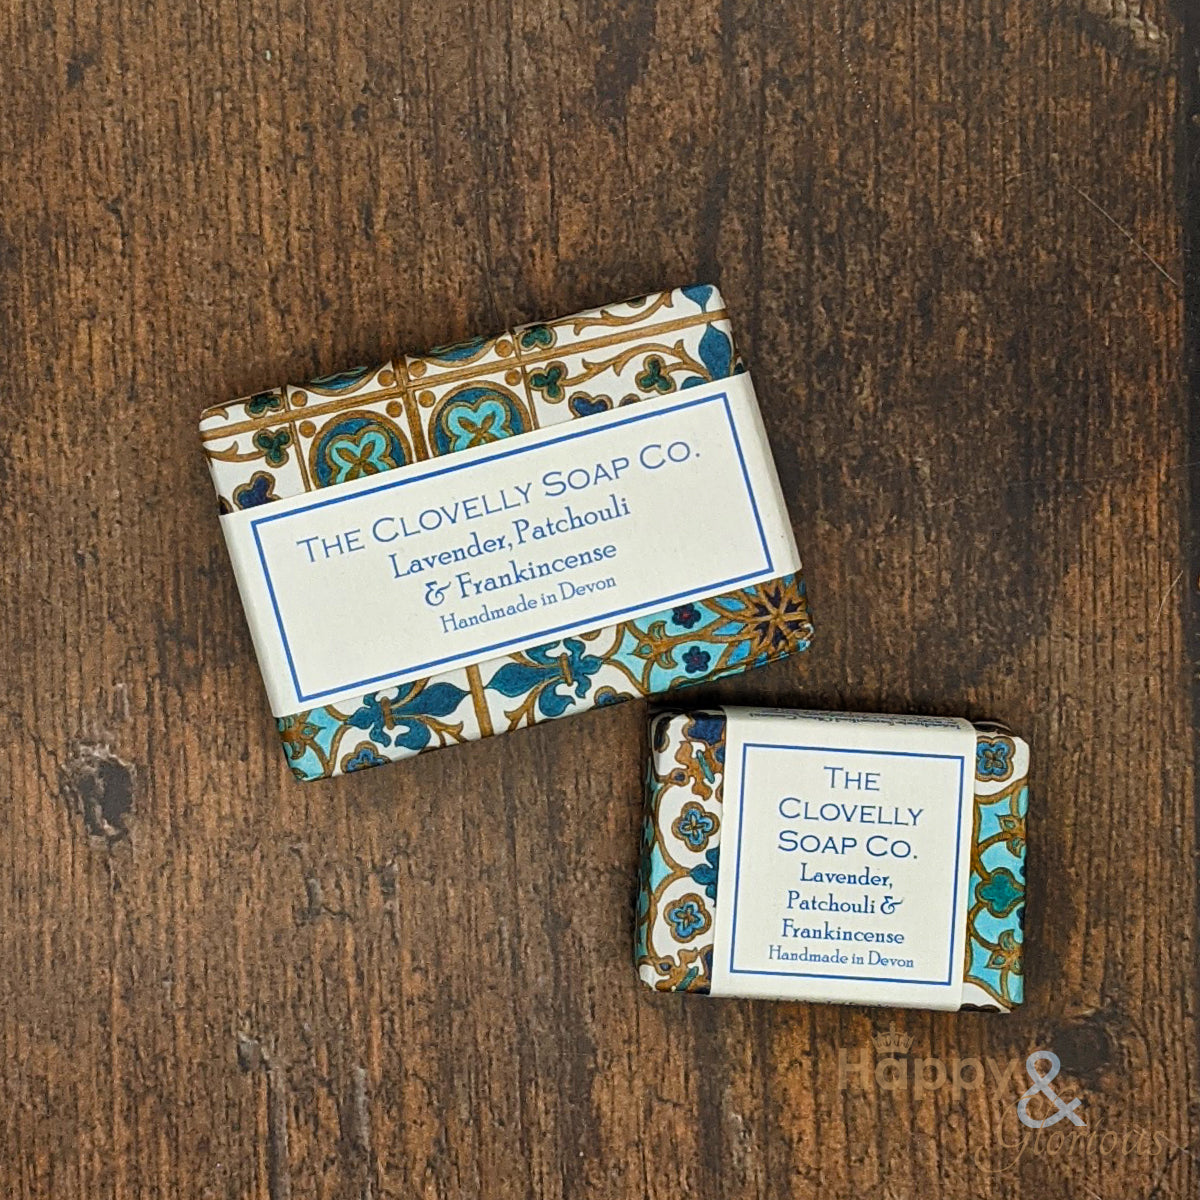 Clovelly lavender, frankincense & patchouli essential oil soap